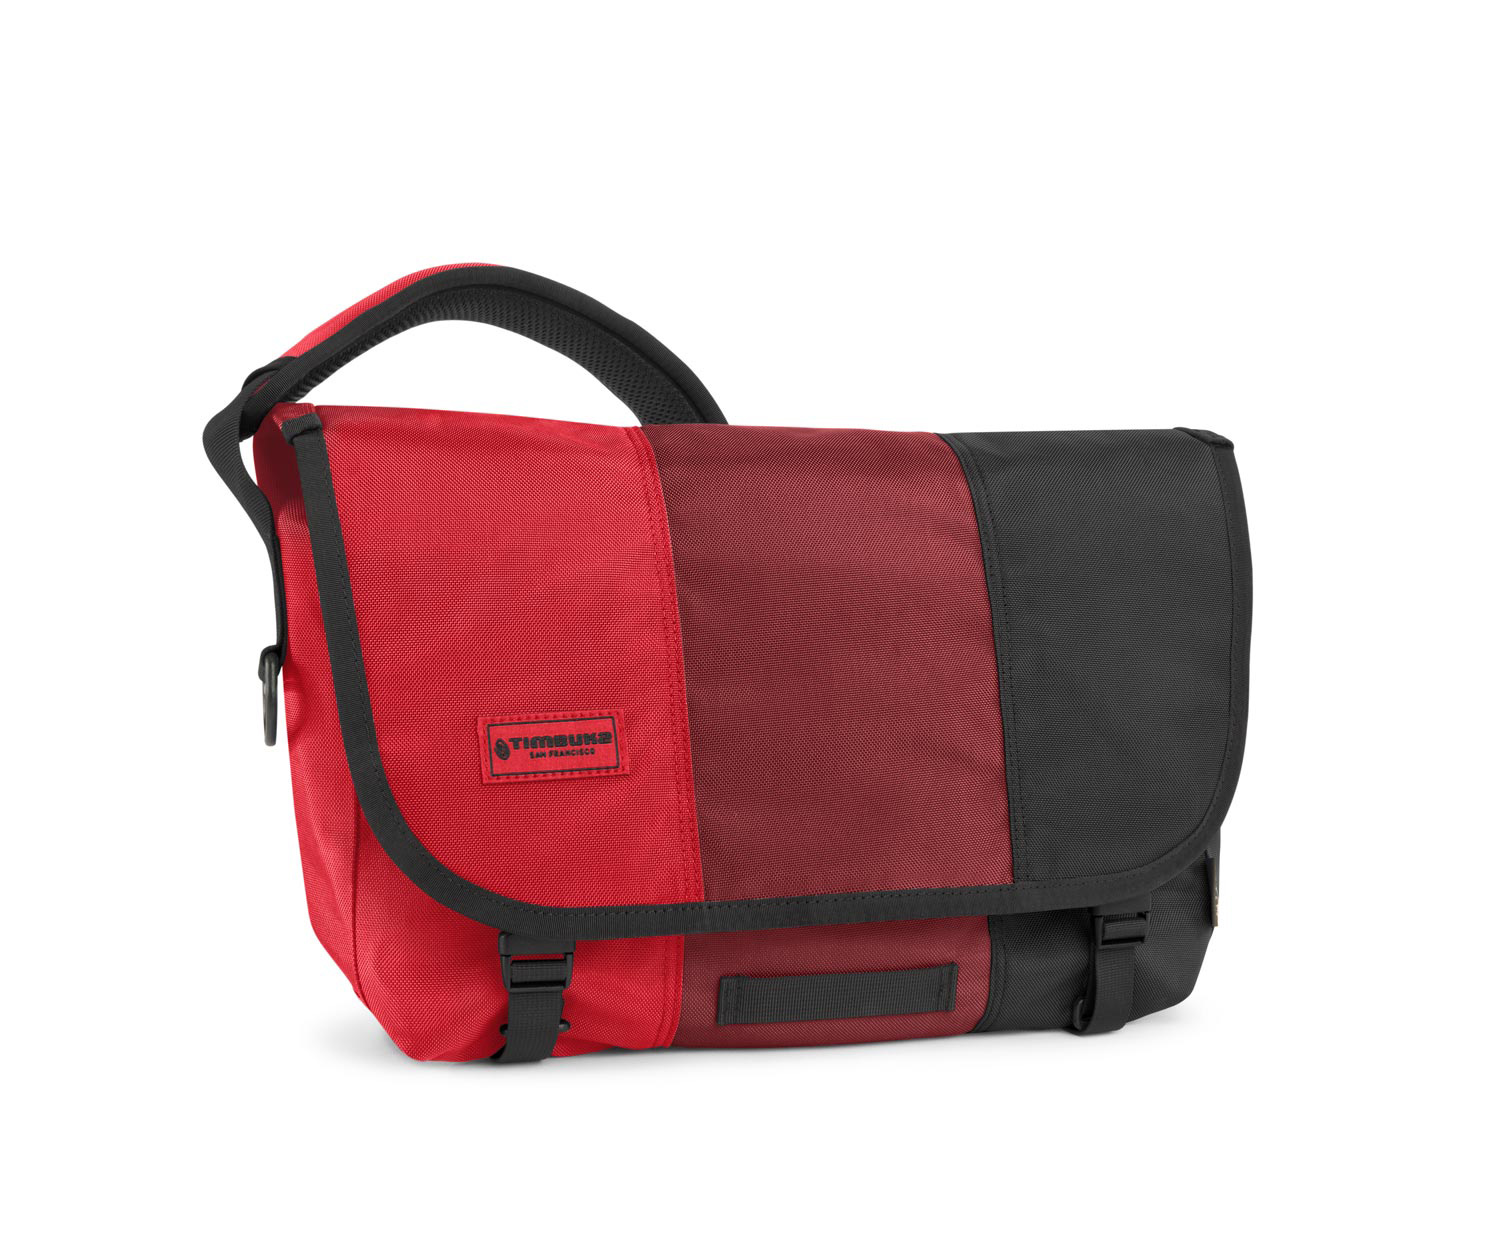 Timbuk2 Shoulder Bag Classic Messenger S Diablo